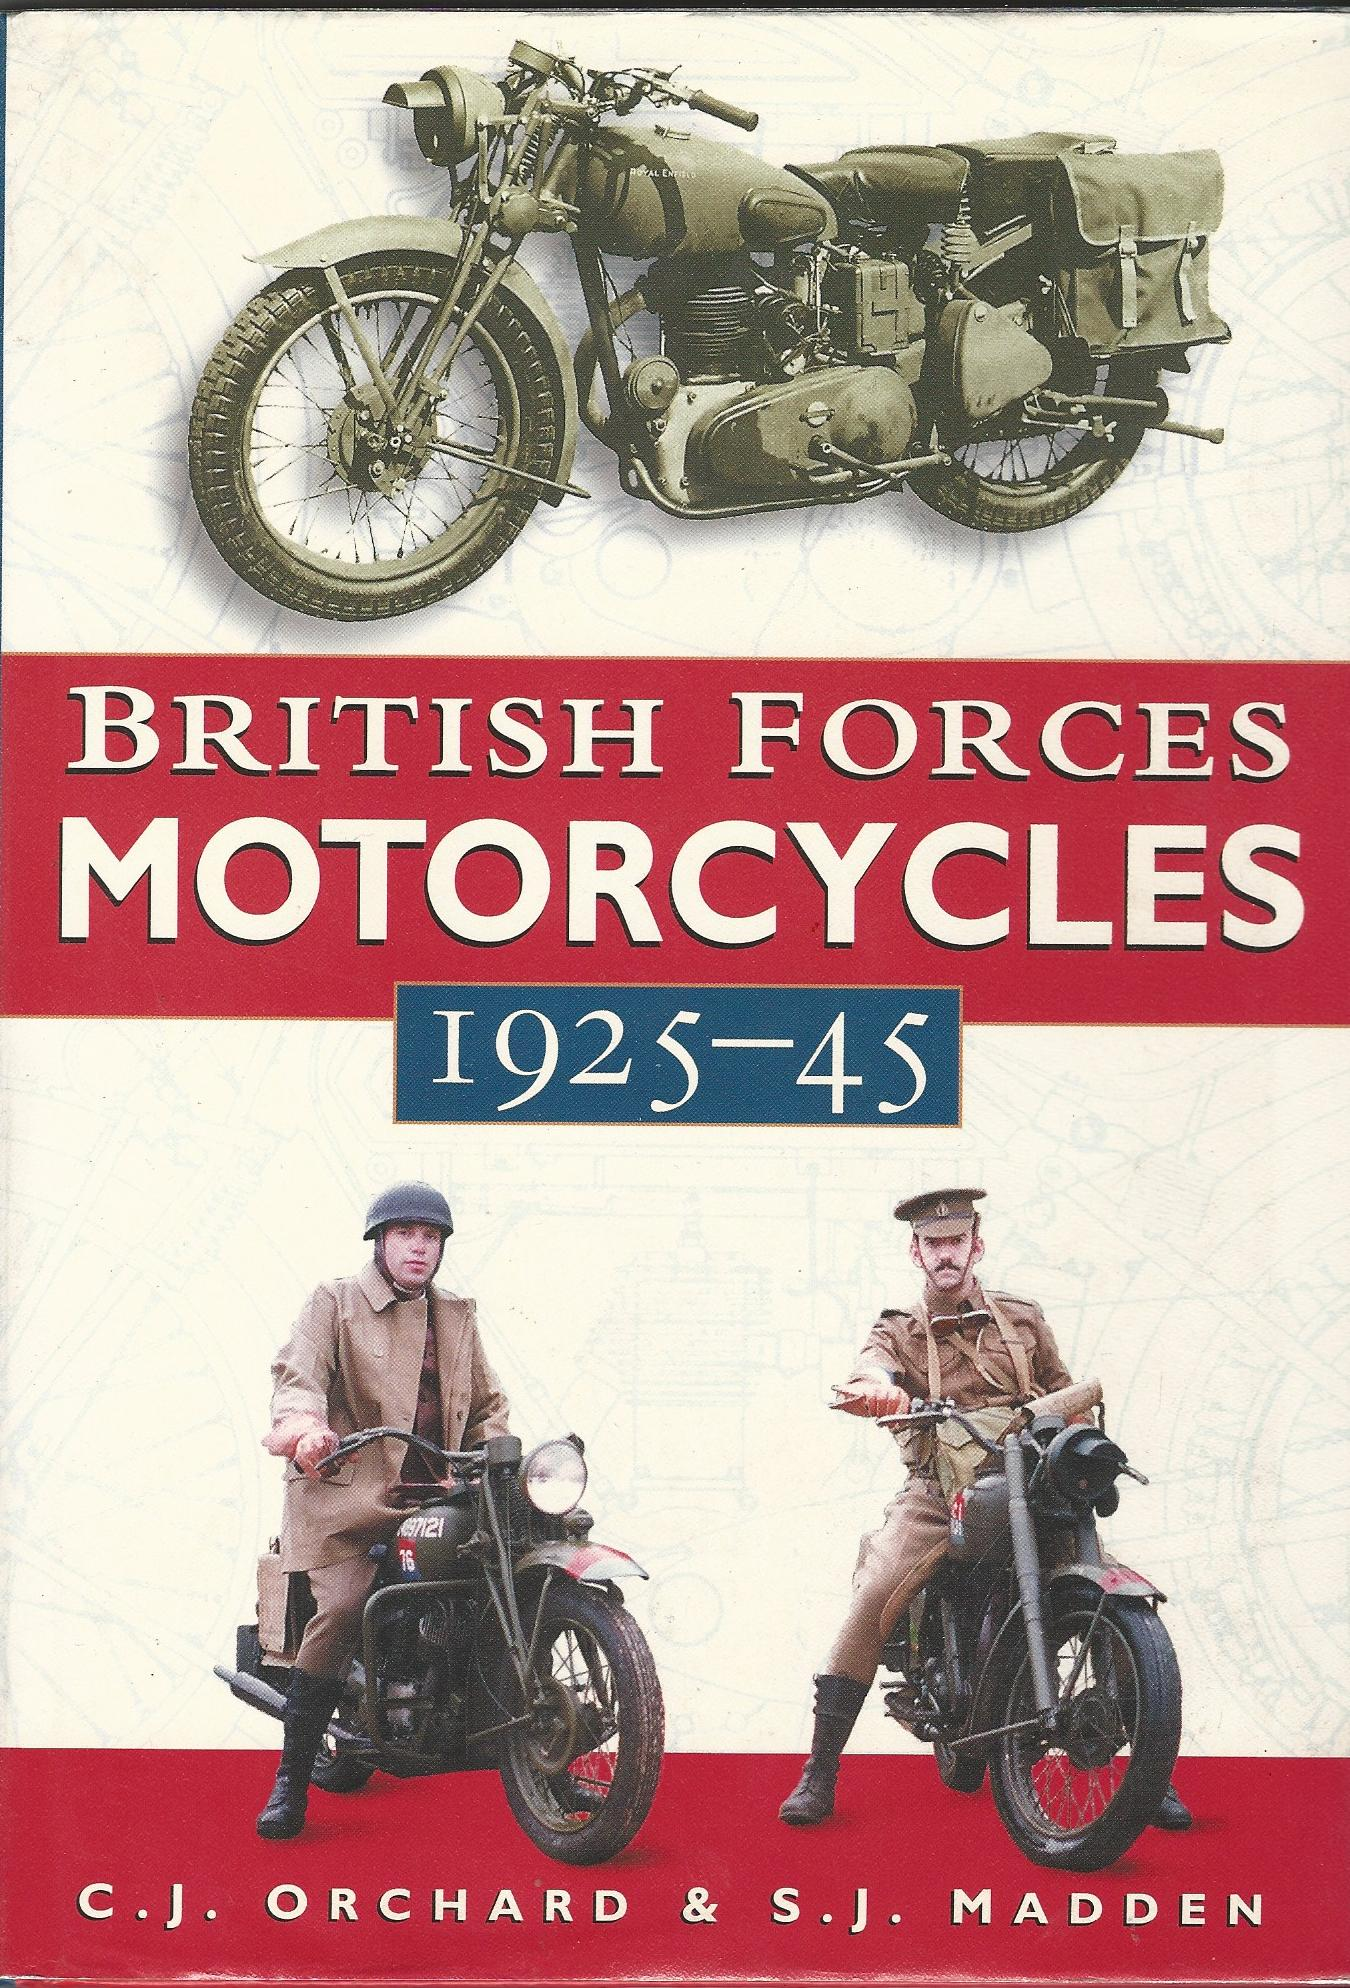 Image for British Forces Motorcycles 1925 - 45